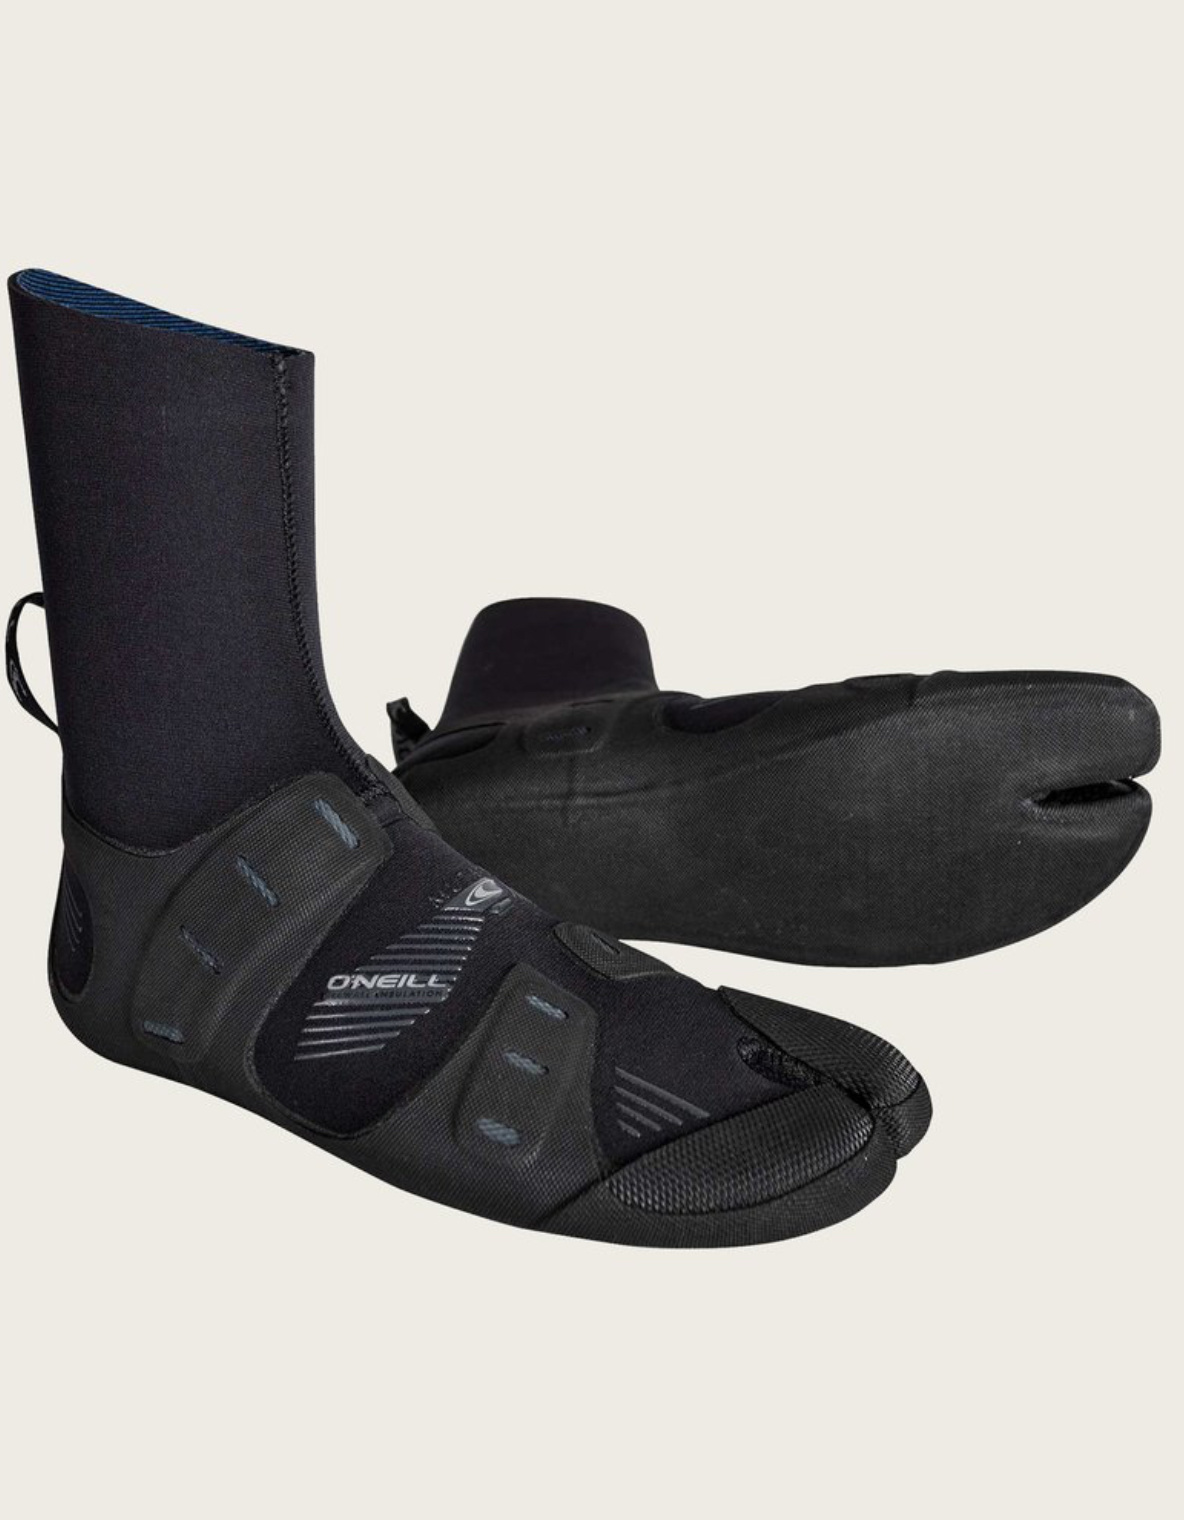 O'NEILL WETSUITS MUTANT 3M ST BOOT